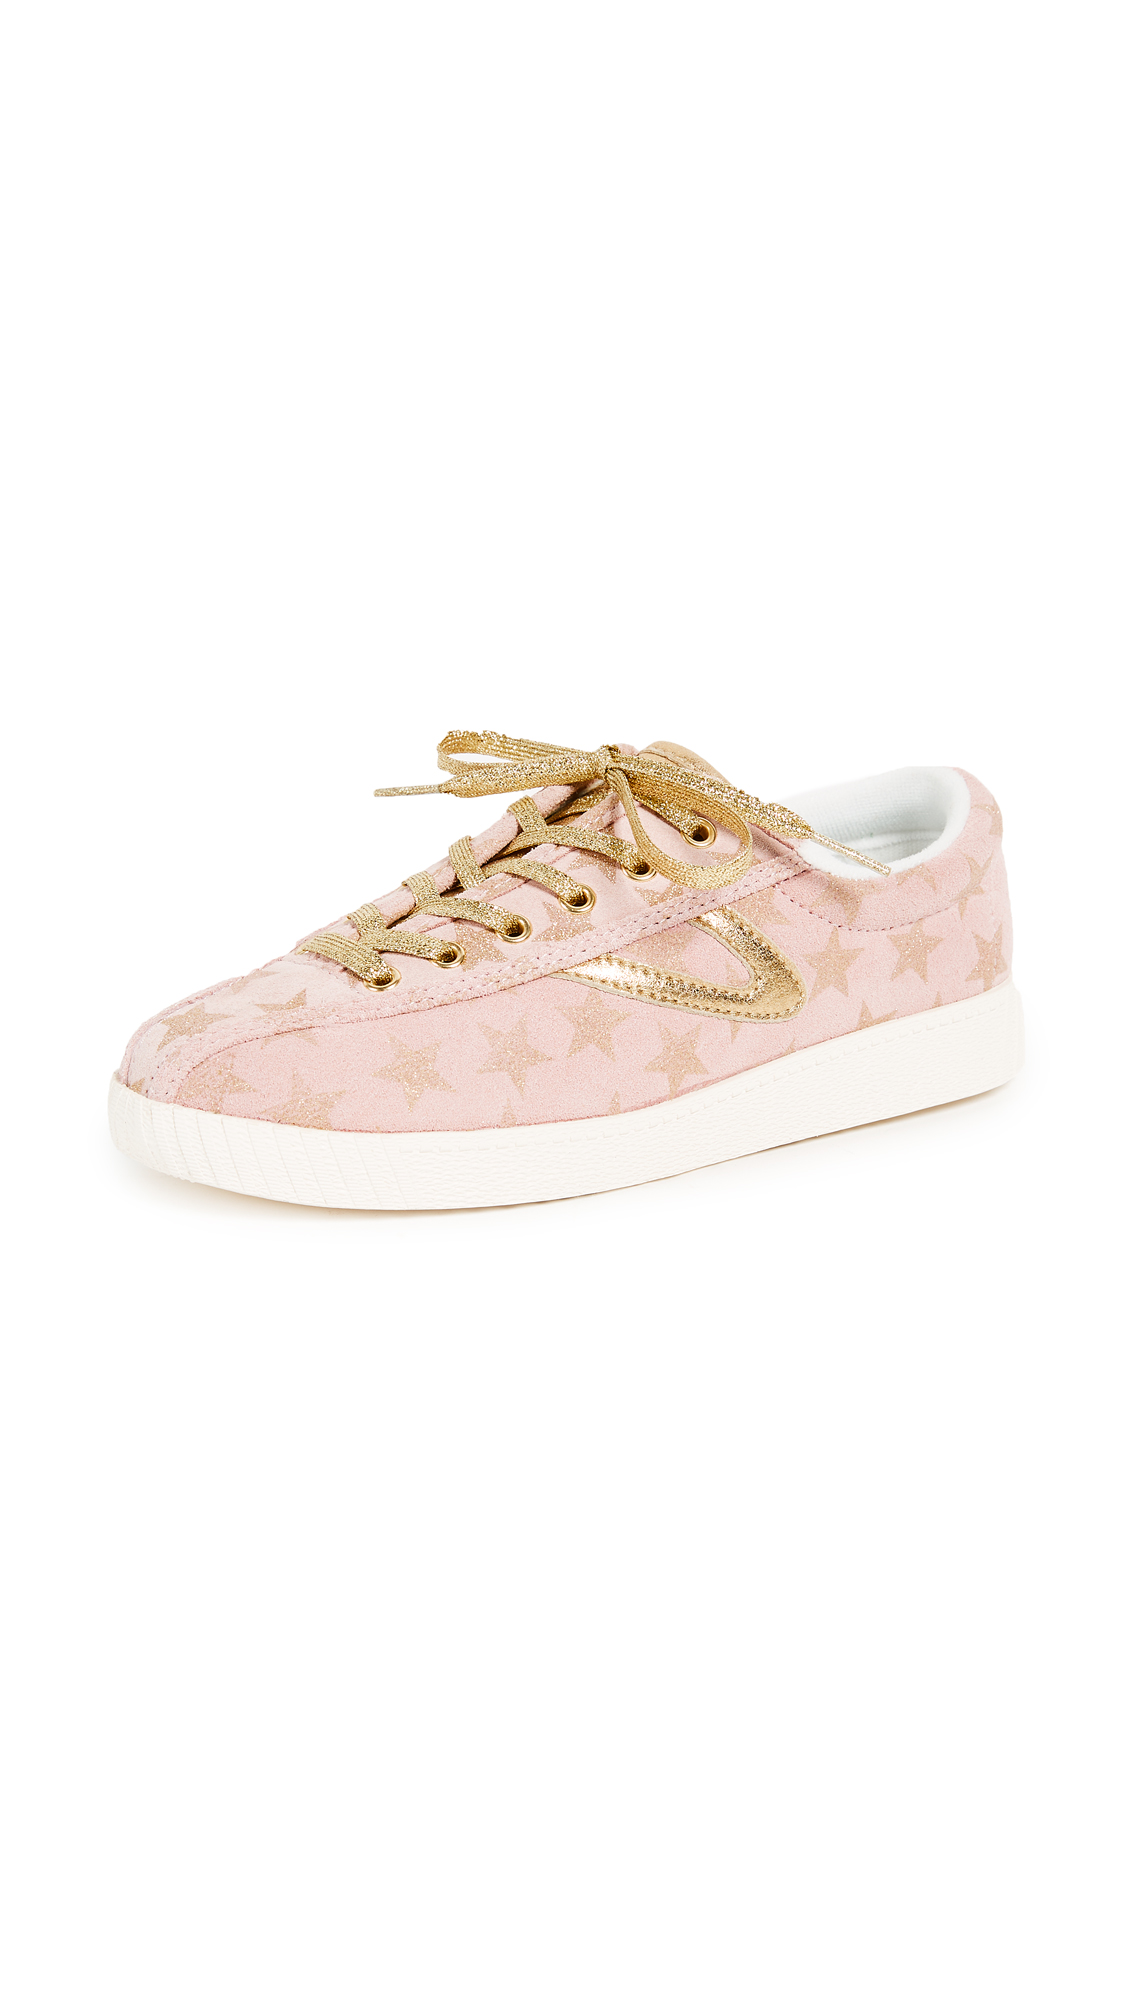 Tretorn Nylite Plus Star Sneakers - Blush/Gold